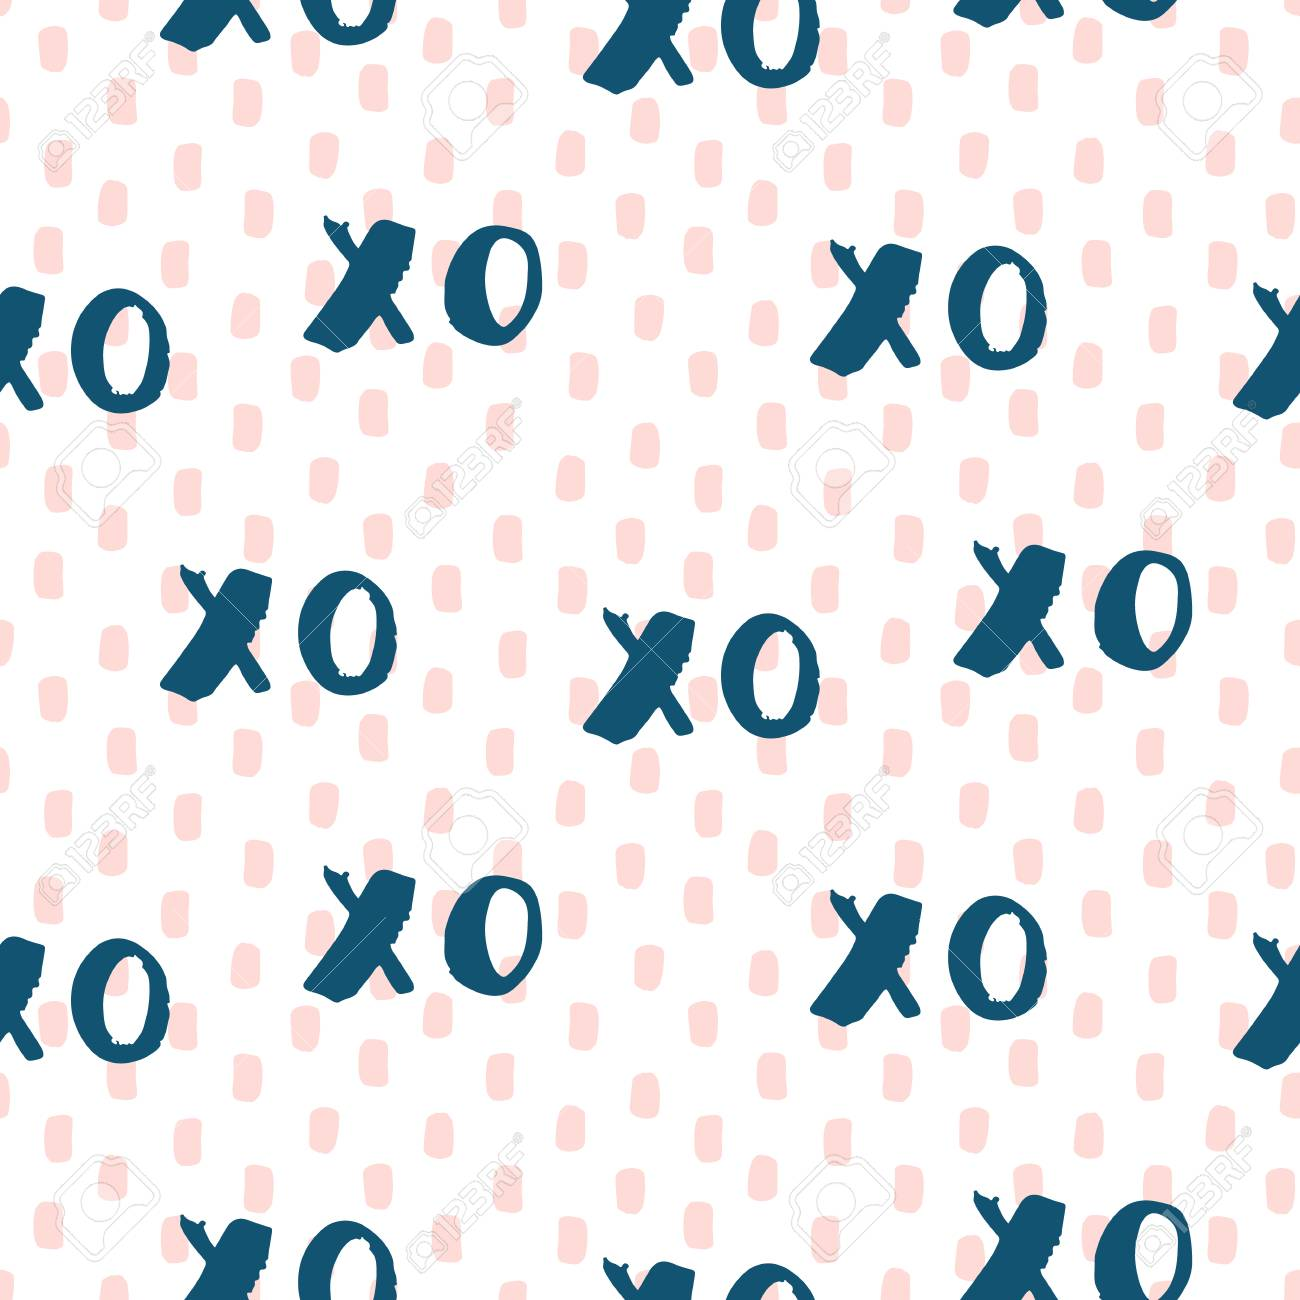 Hand Drawn Vector Seamless Pattern With Symbols Of Hugs And Kisses